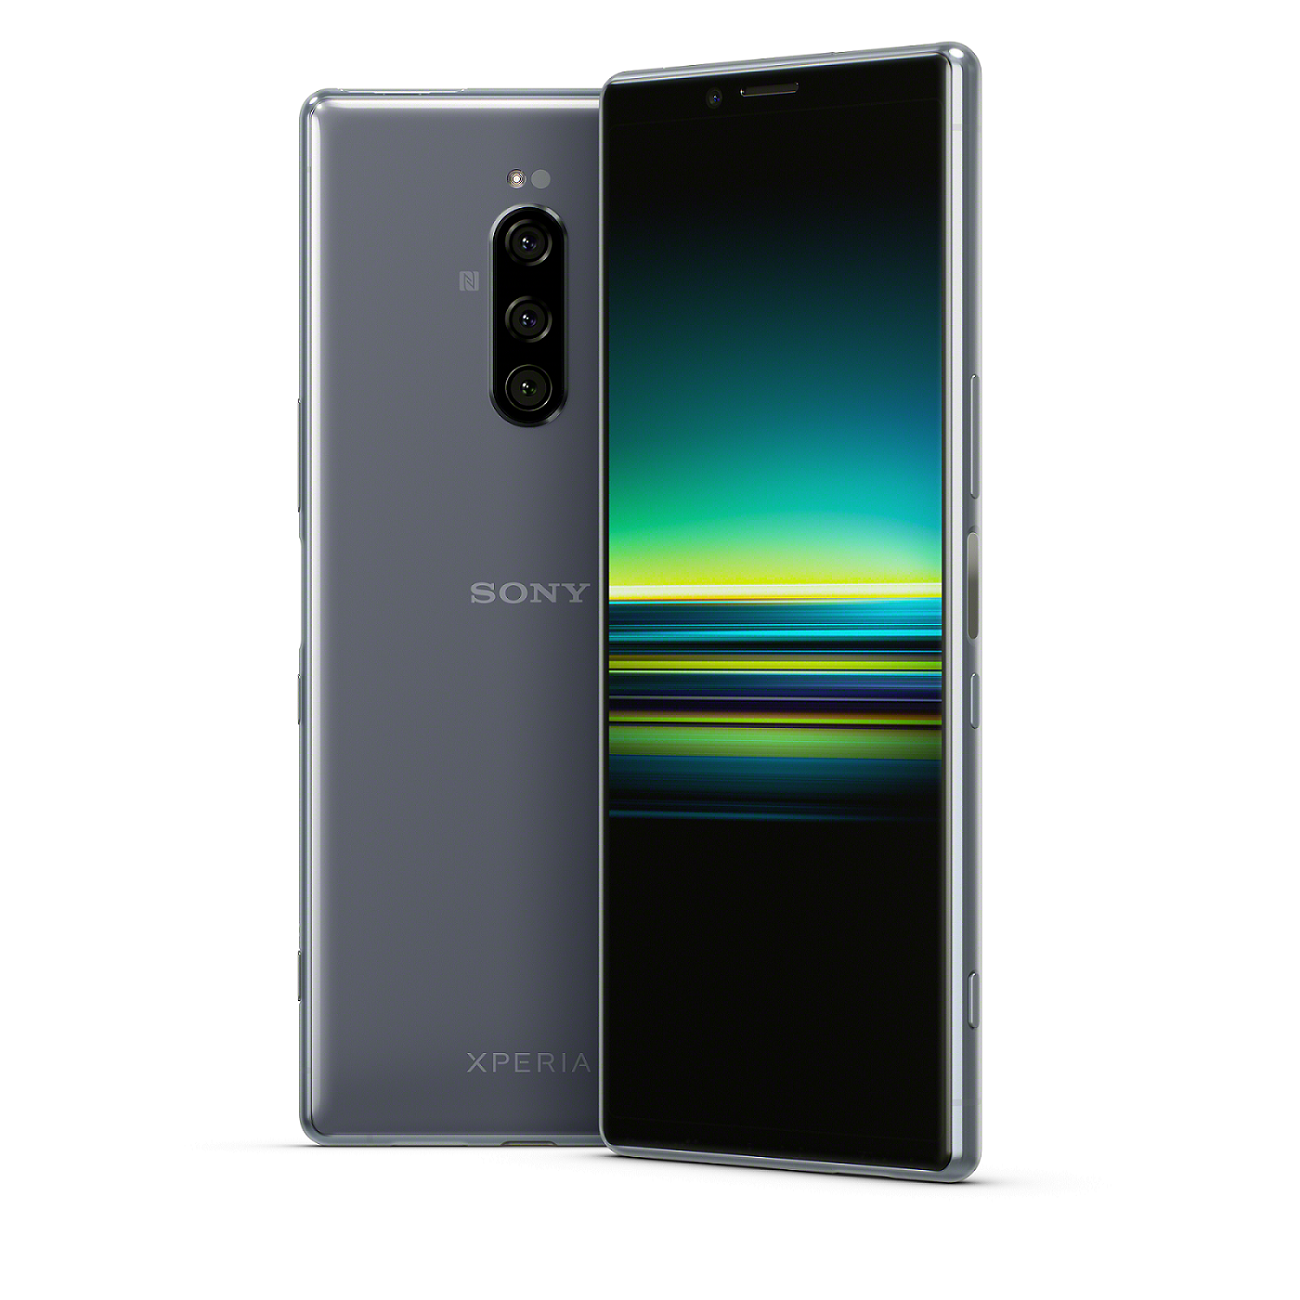 Sony redefines its smartphone vision with the new flagship Xperia 1